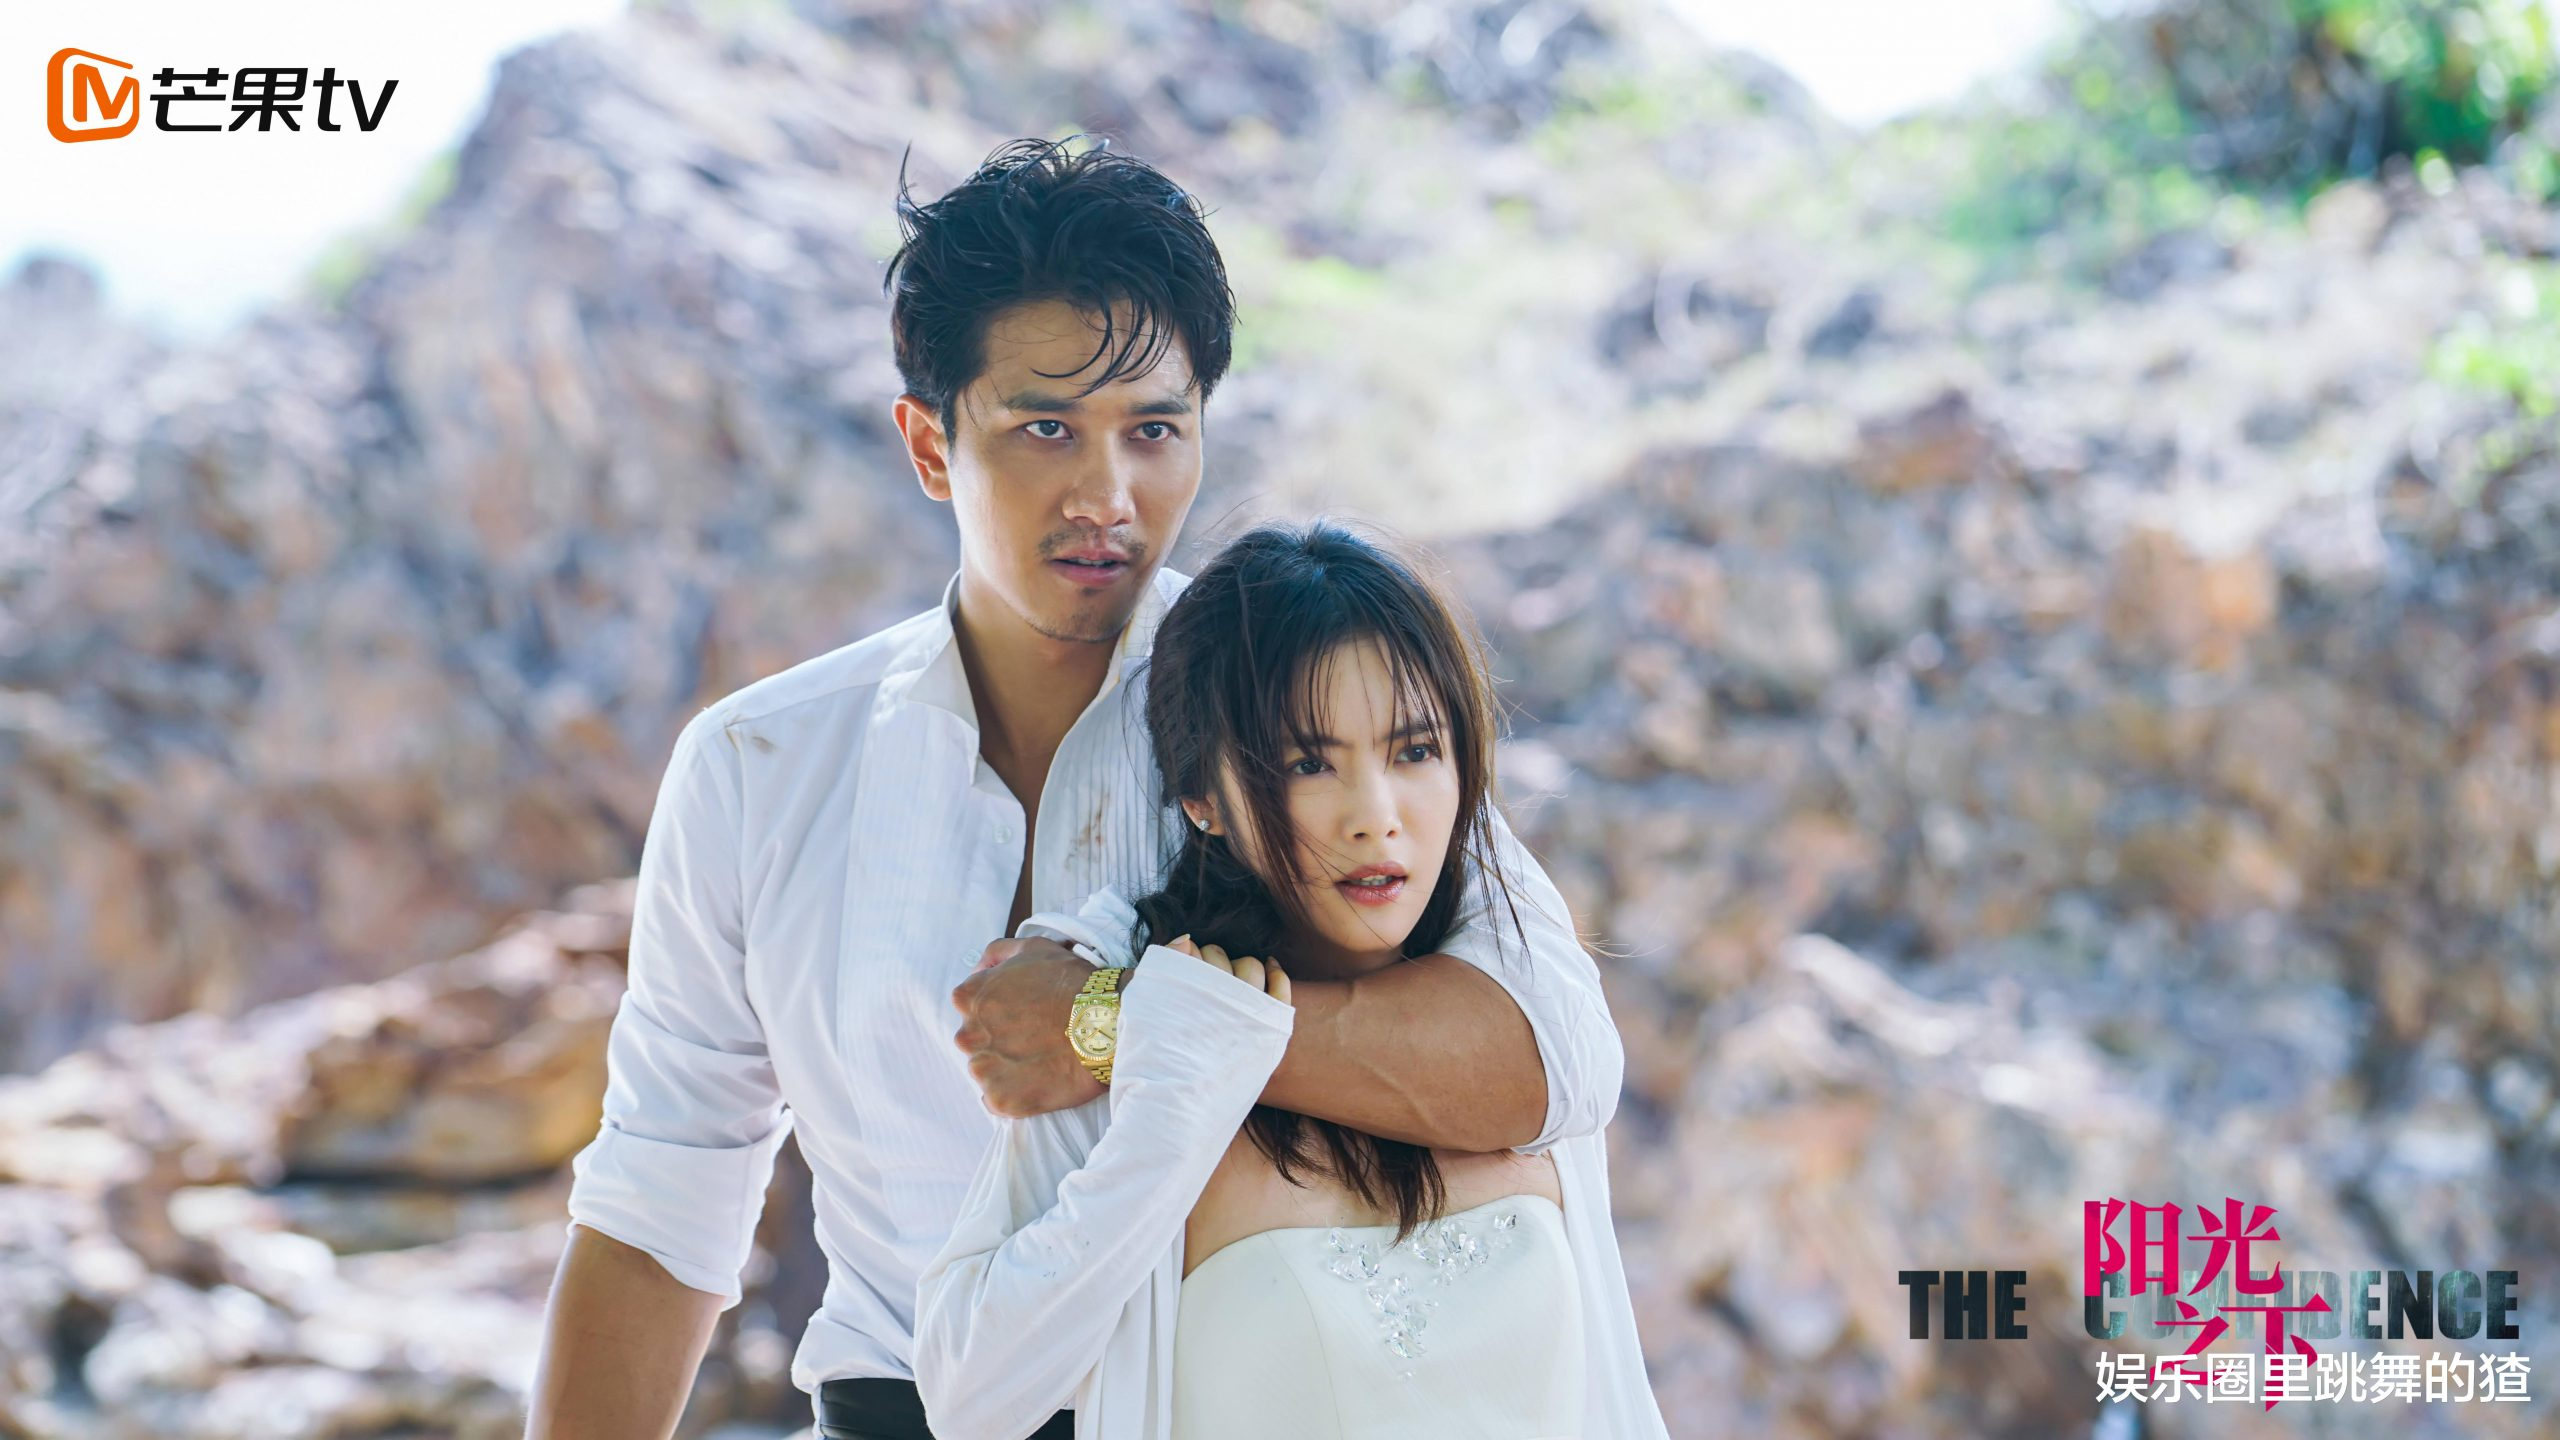 """""""Under the Sun"""" just ended, Cai Wenjing and Peng Guanying re-acted as a couple, netizen: Ye Qinghui"""